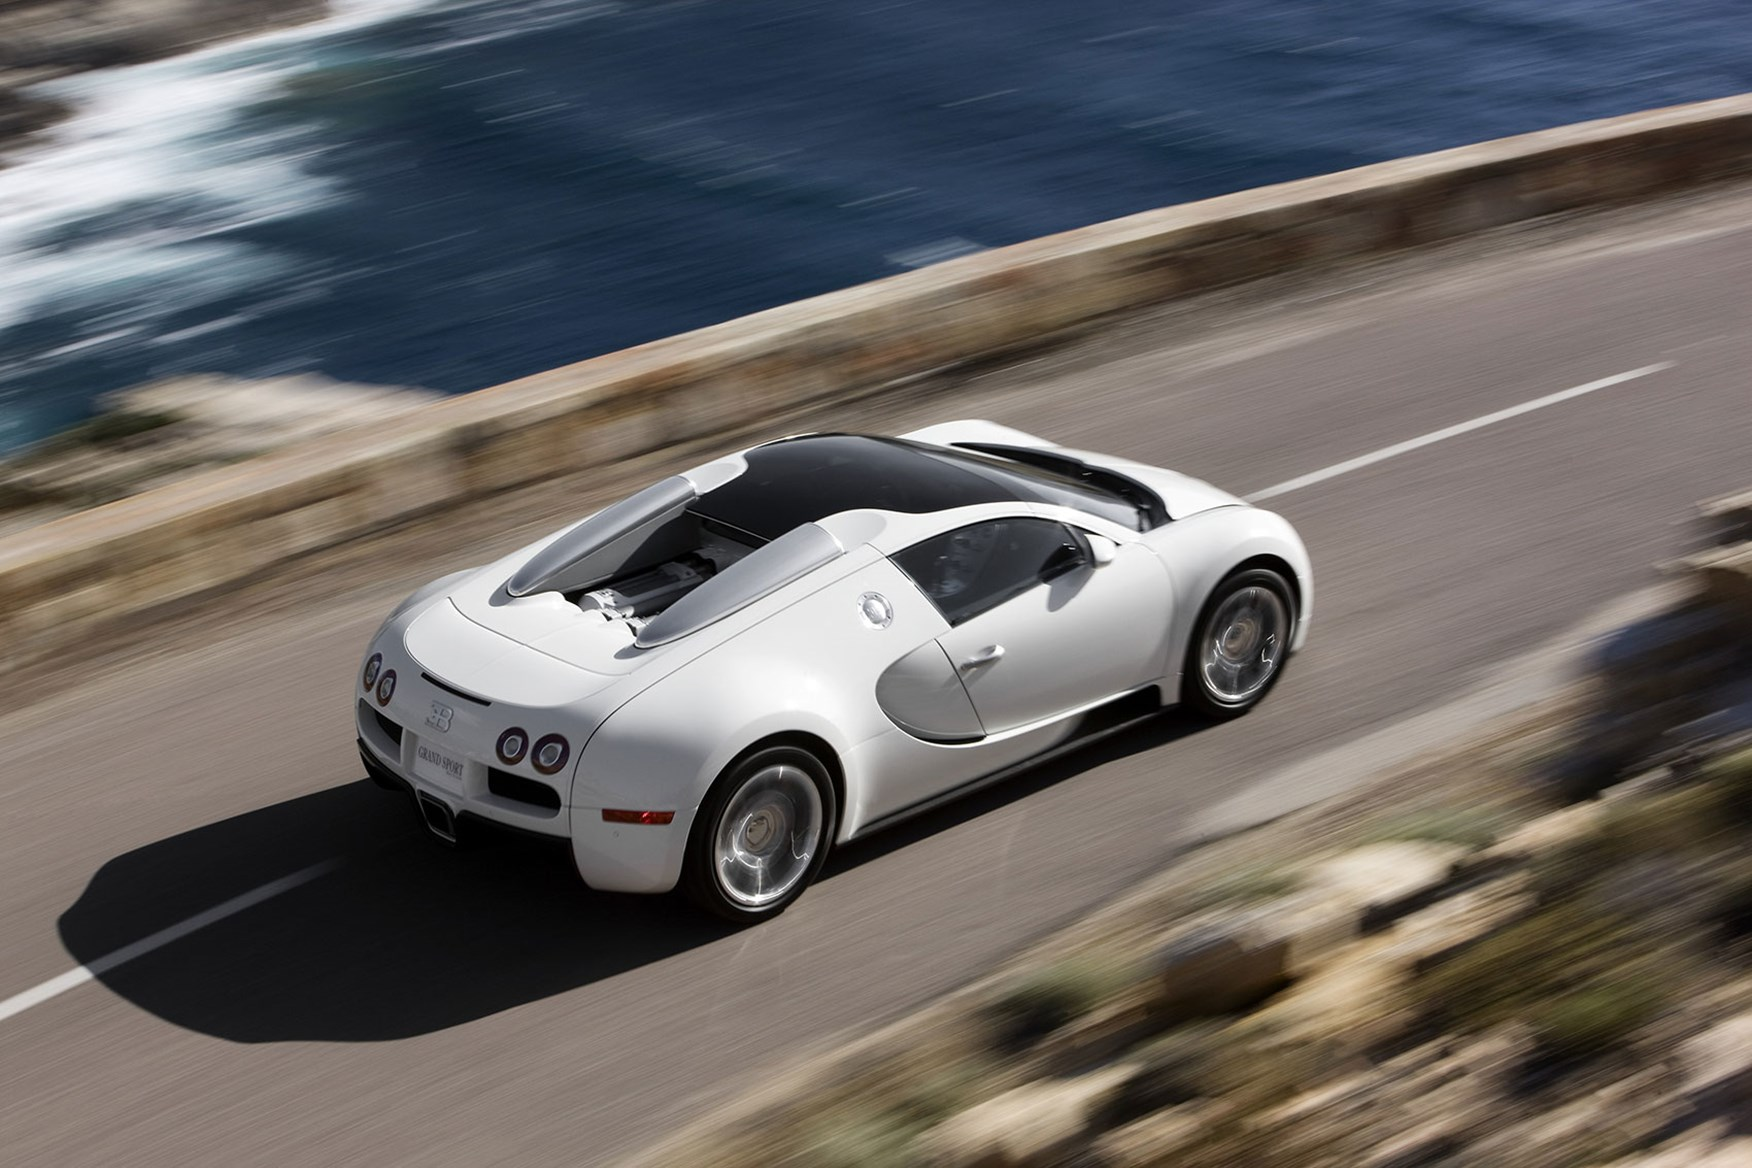 ... CAR The Bugatti Veyron In Action: Here As 16.4 Grand Sport ...